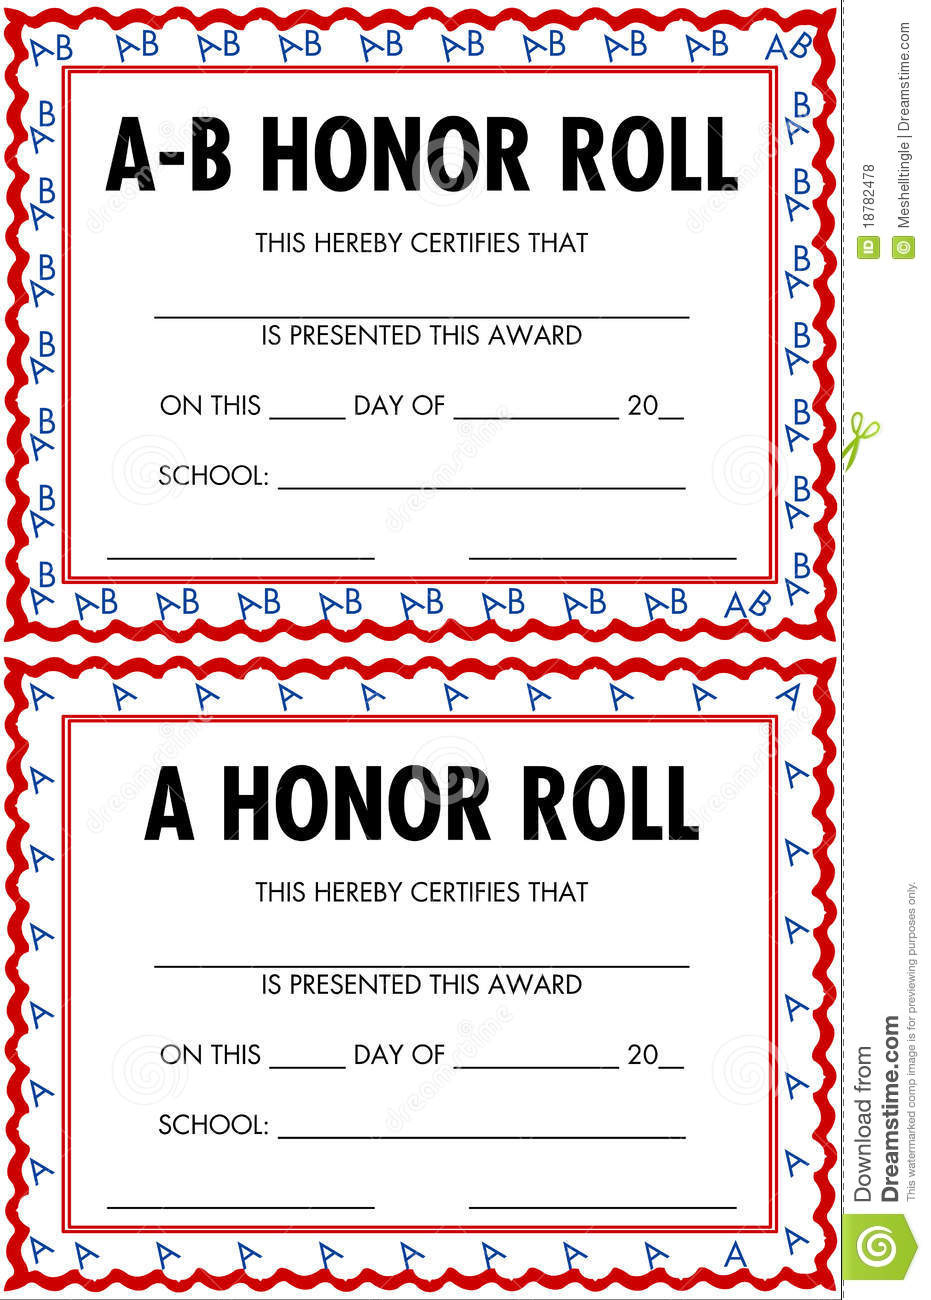 Honor Roll Certificates Stock Vector Illustration Of with regard to Honor Award Certificate Template